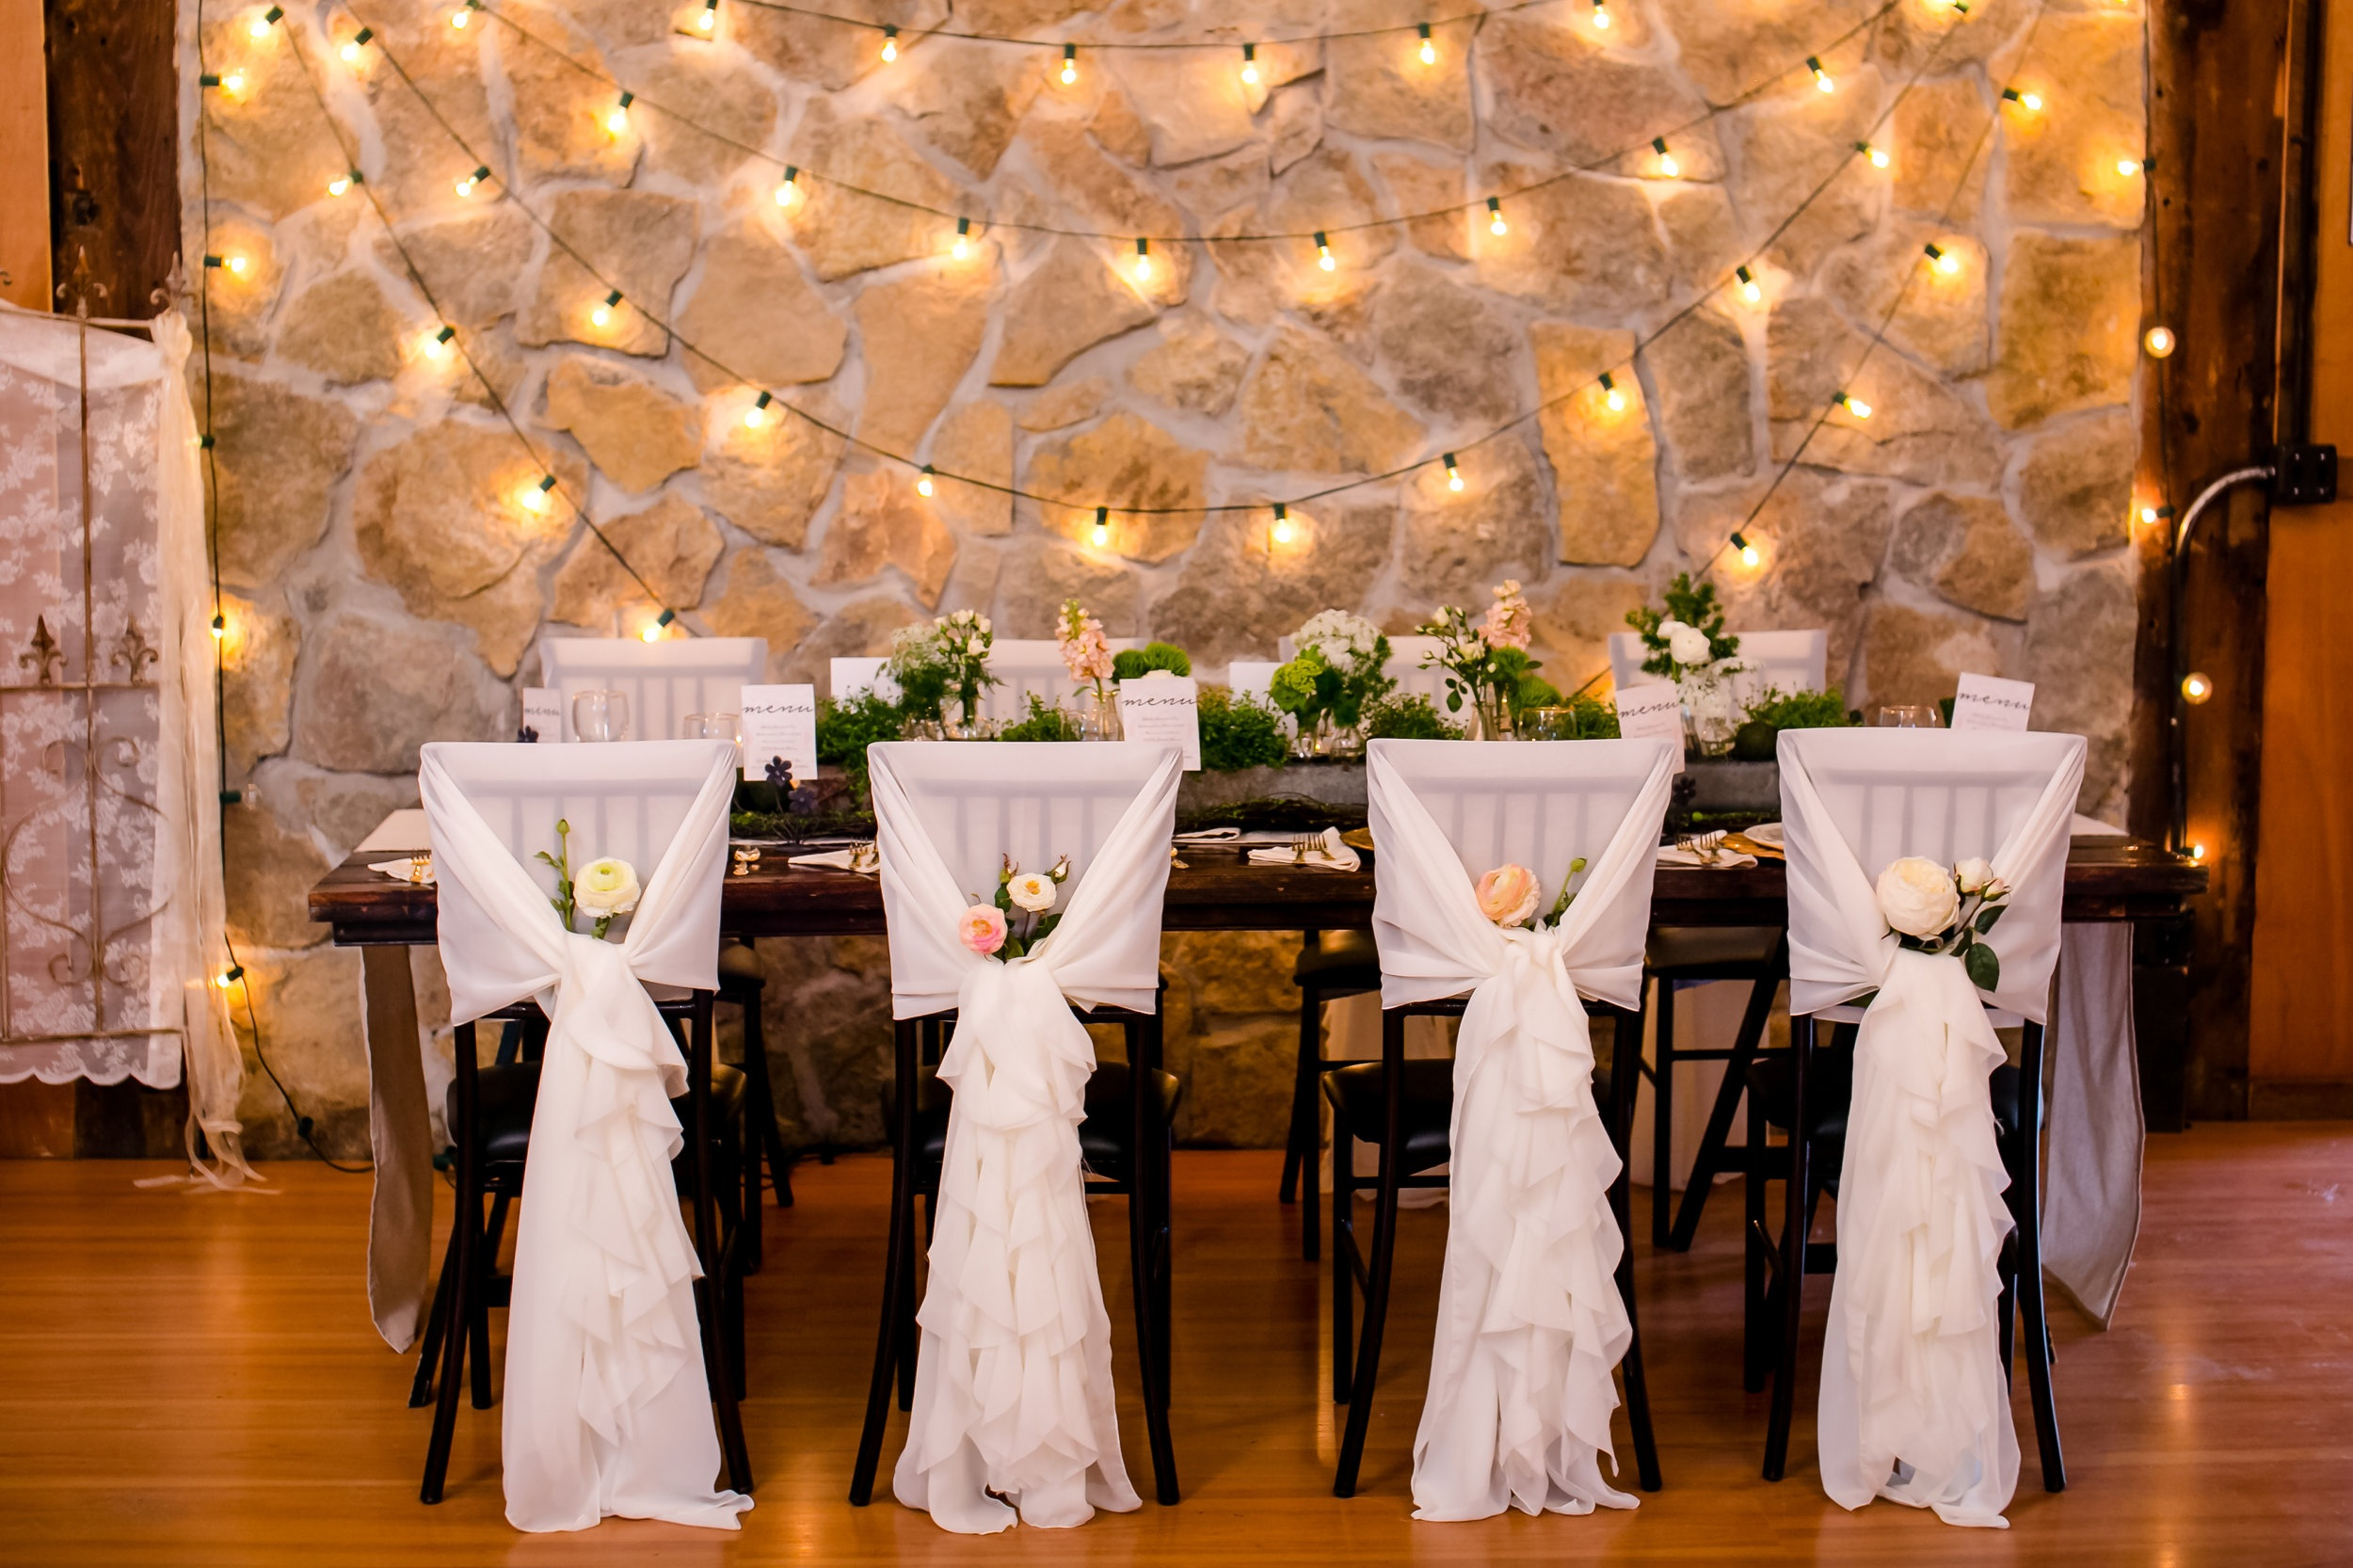 Cafe light backdrop behind the head table giving off a romantic glow